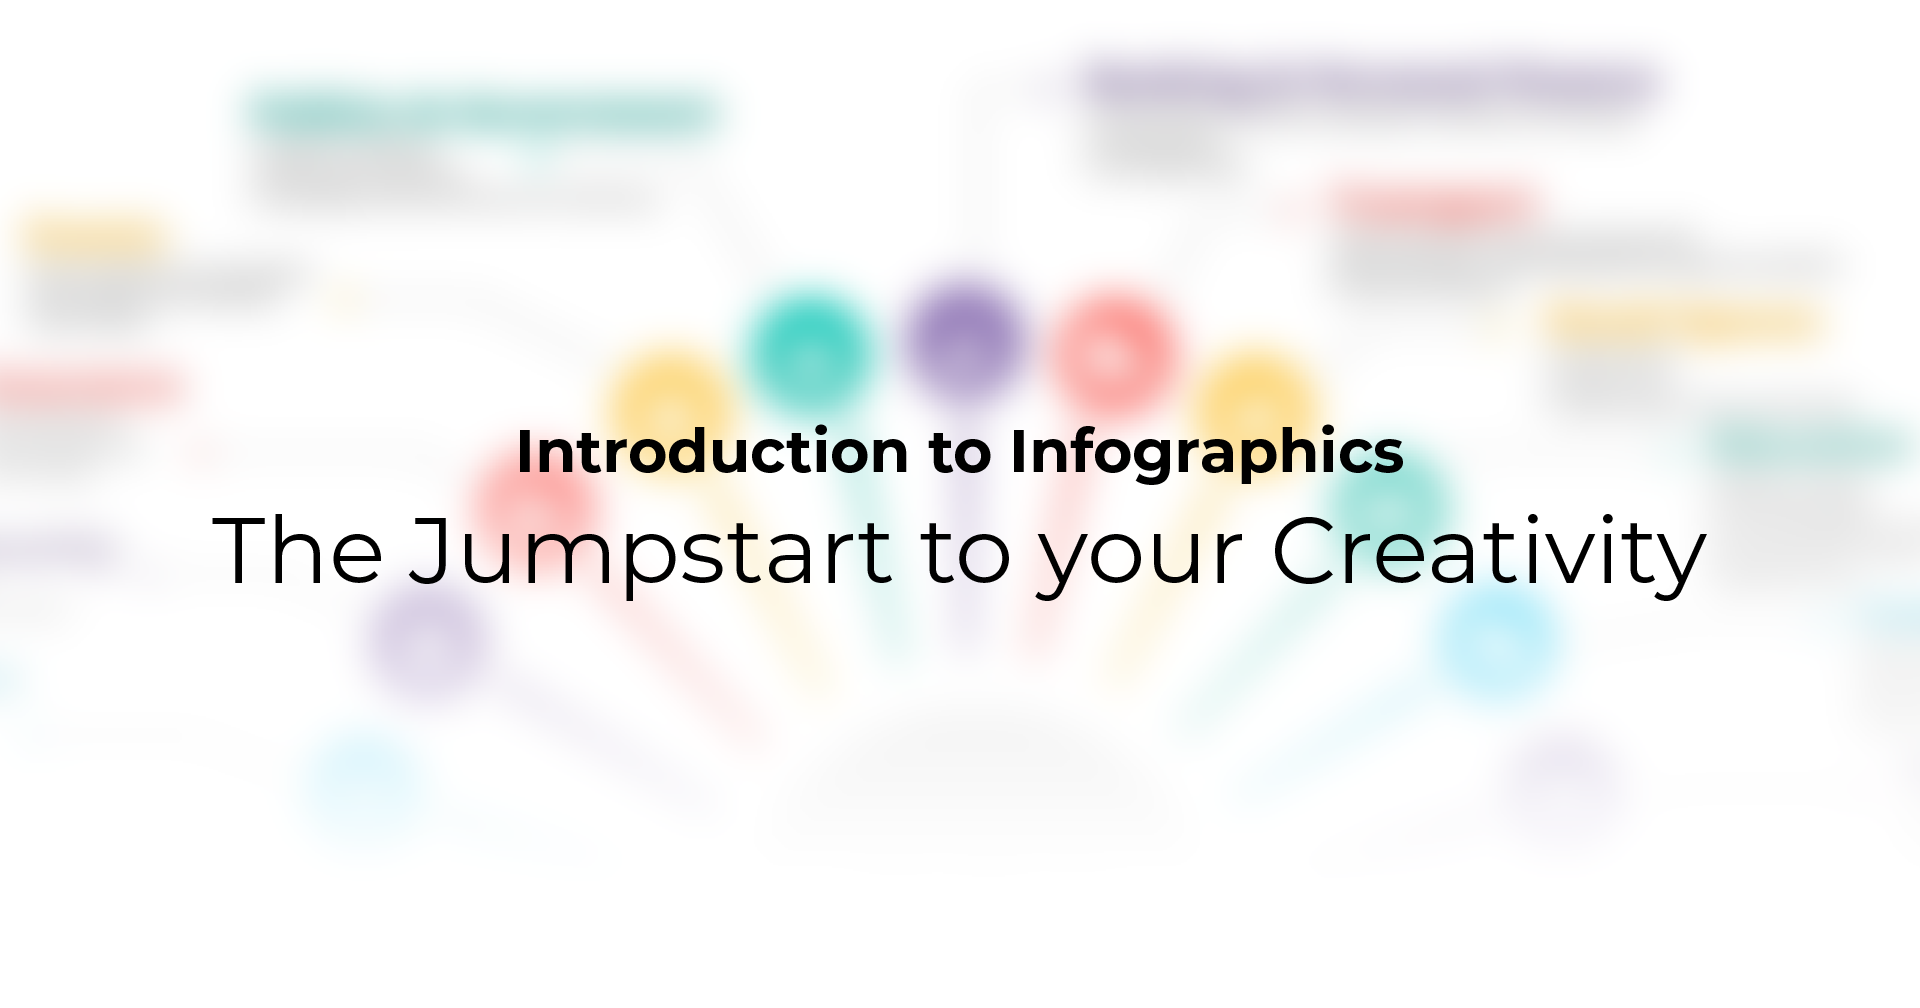 Introduction to Infographics - The Jumpstart to your Creativity!